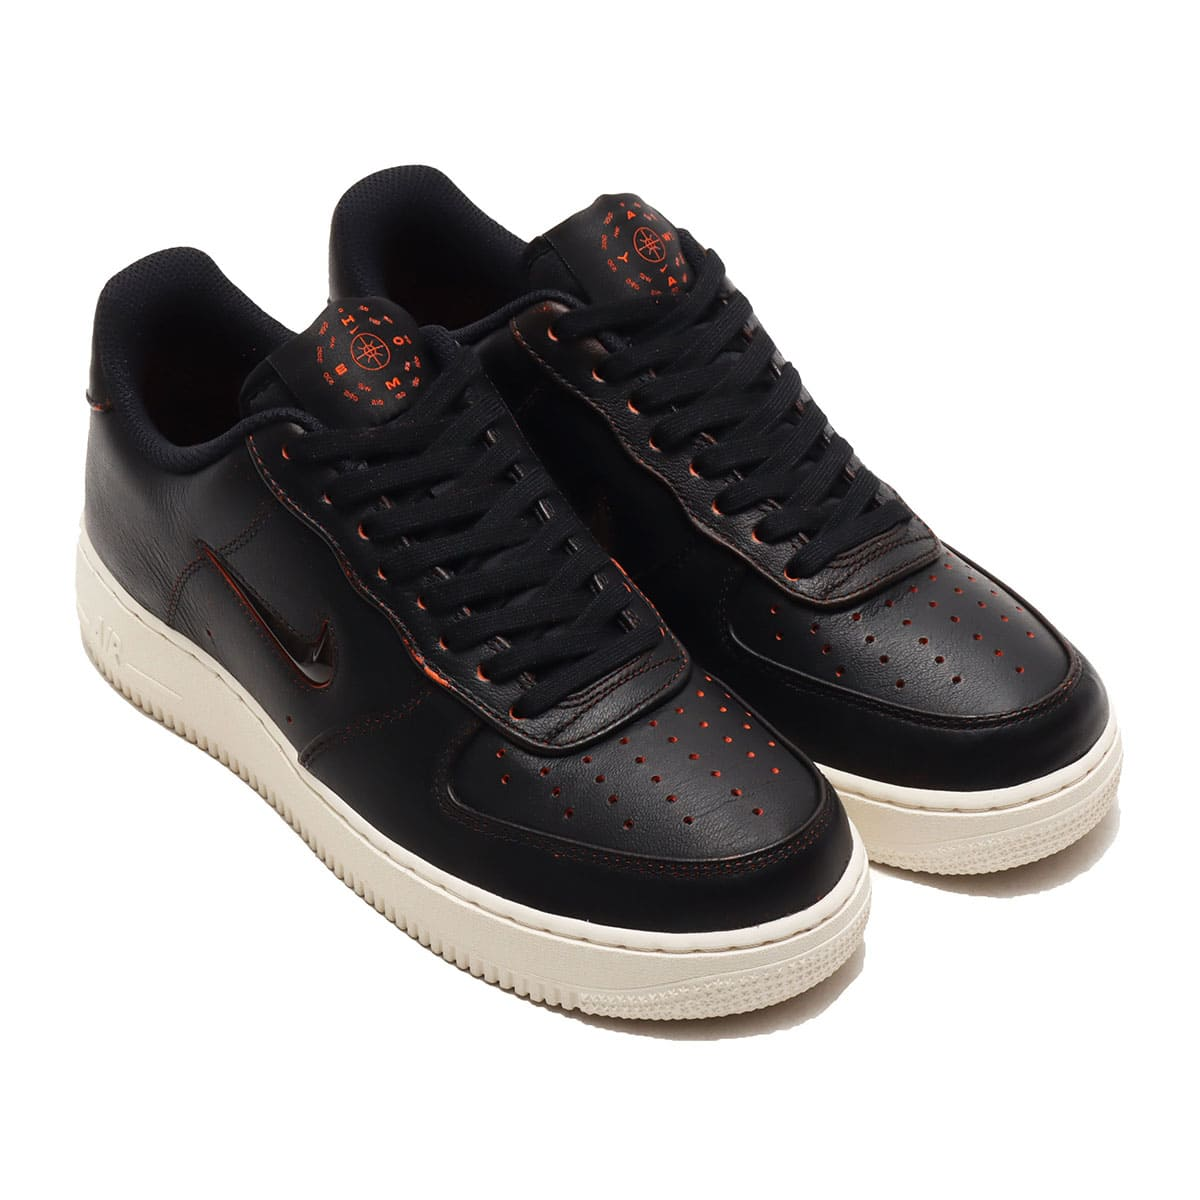 NIKE AIR FORCE 1 '07 PRM BLACK/BLACK-SAFETY ORANGE-SAIL 20SU-S_photo_large